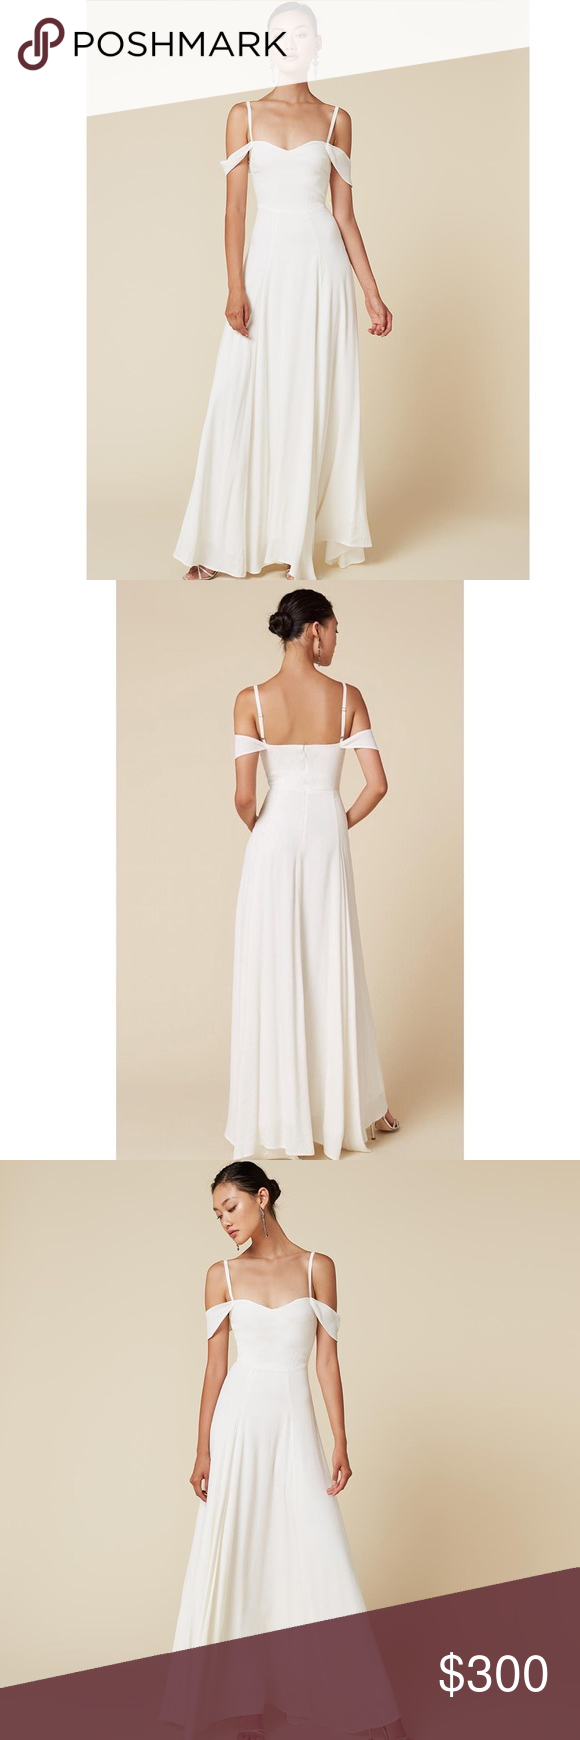 Reformation Poppy Dress In Ivory Size 12 Nwot This Is An Absolutely Stunning